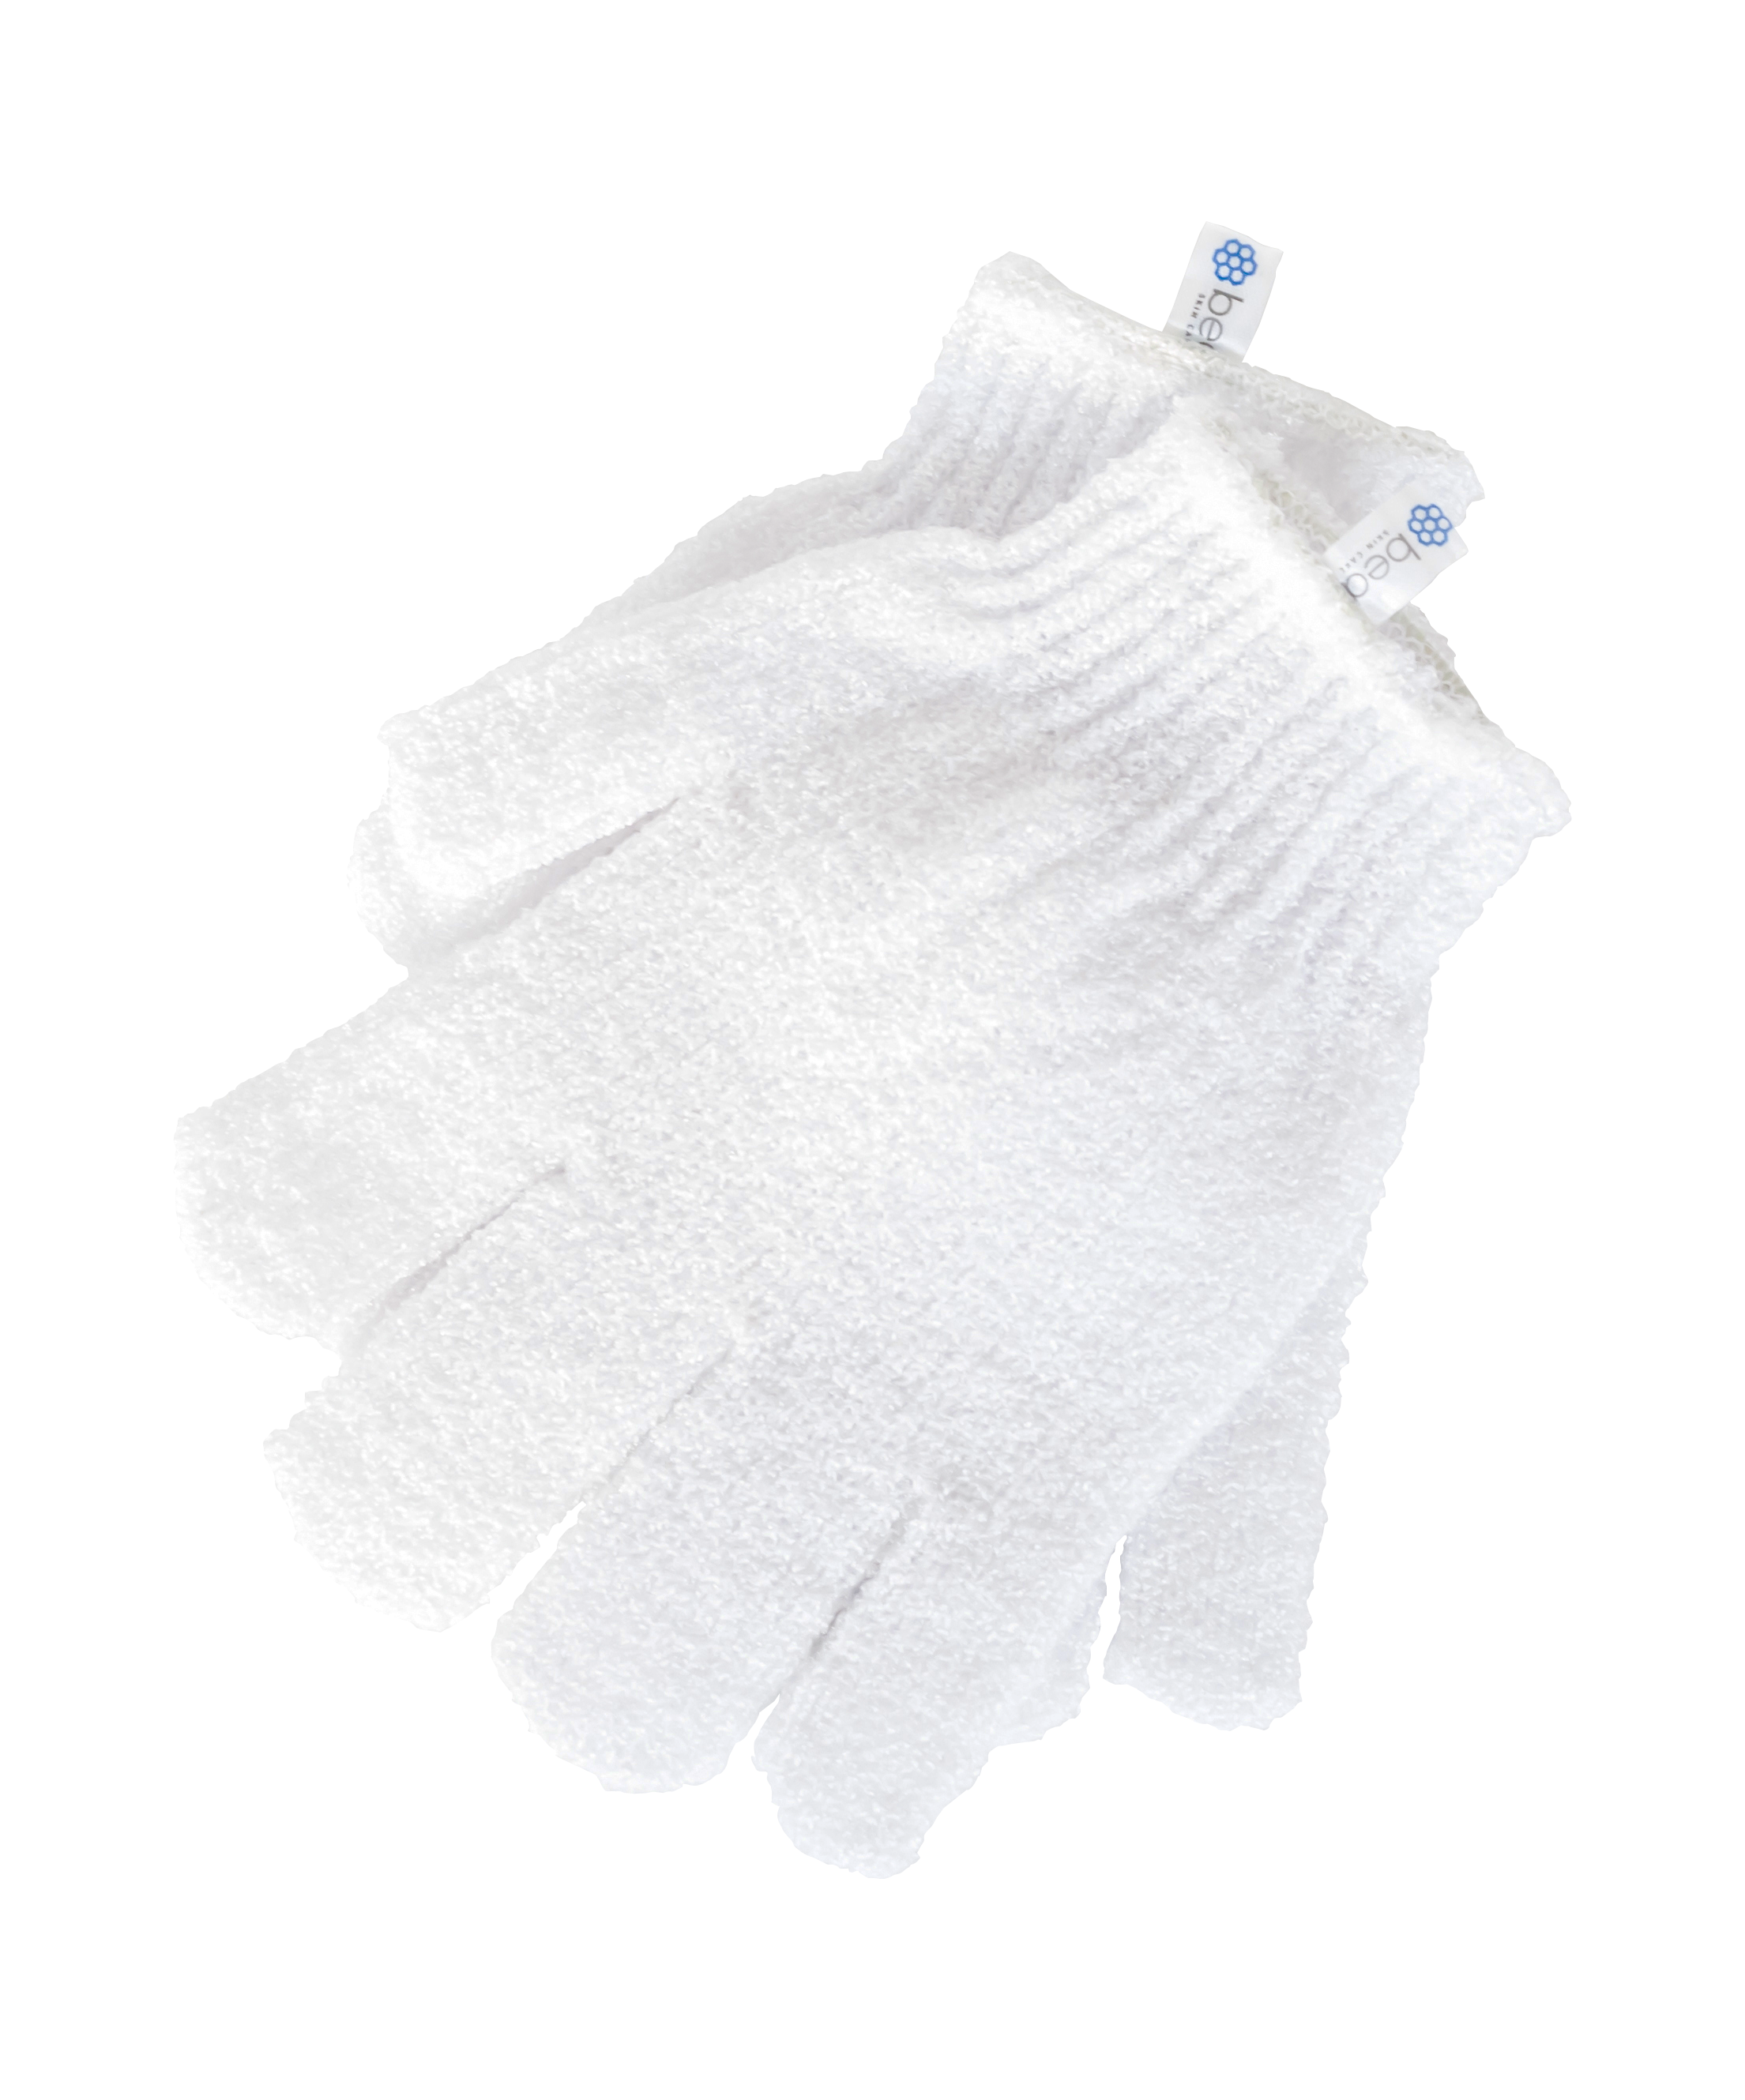 Exfoliating Gloves - 1 Pair Gloves bea Skin Care